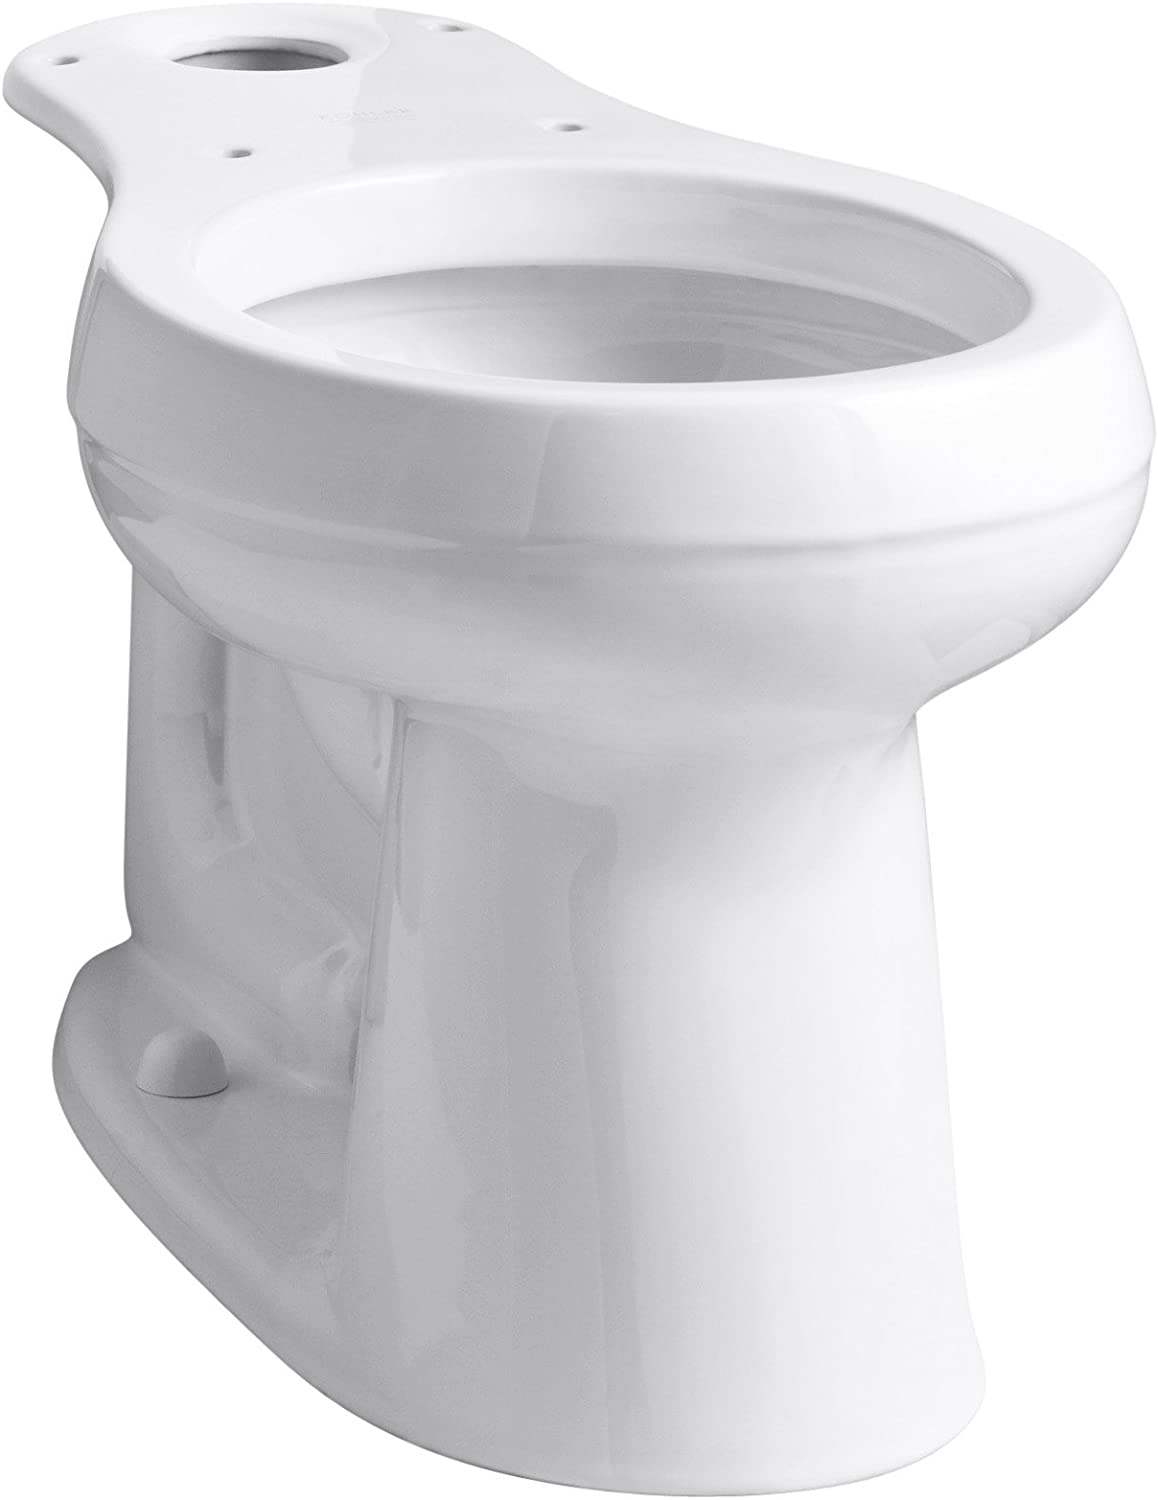 KOHLER 4829-0 Cimarron Comfort Height Round-Front Toilet Bowl with 10